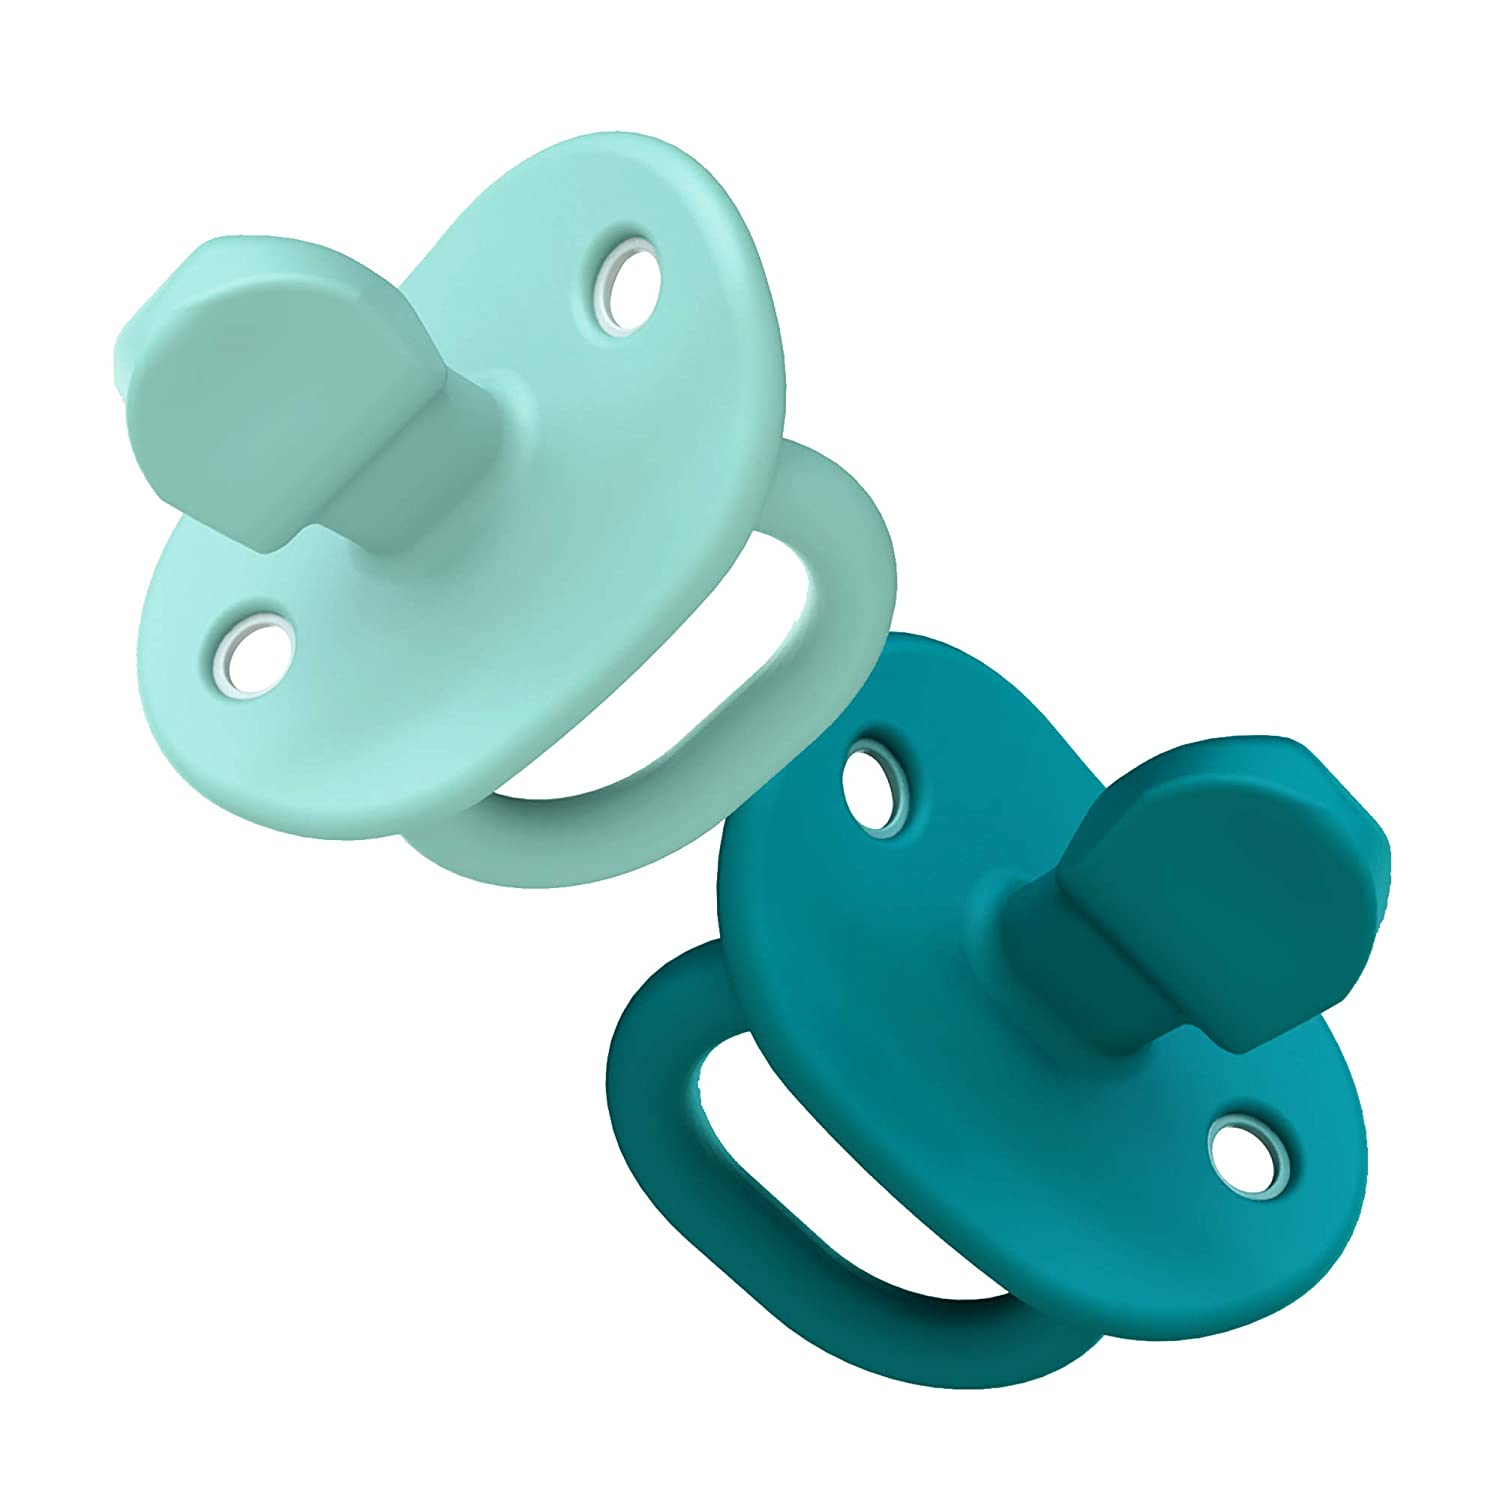 Chicco Physioforma 100/% Soft Silicone Onepiece Pacifier for Babies 16 Months+ Teal Orthodontic Nipple BPA-Free 2Count in Sterilizing Case